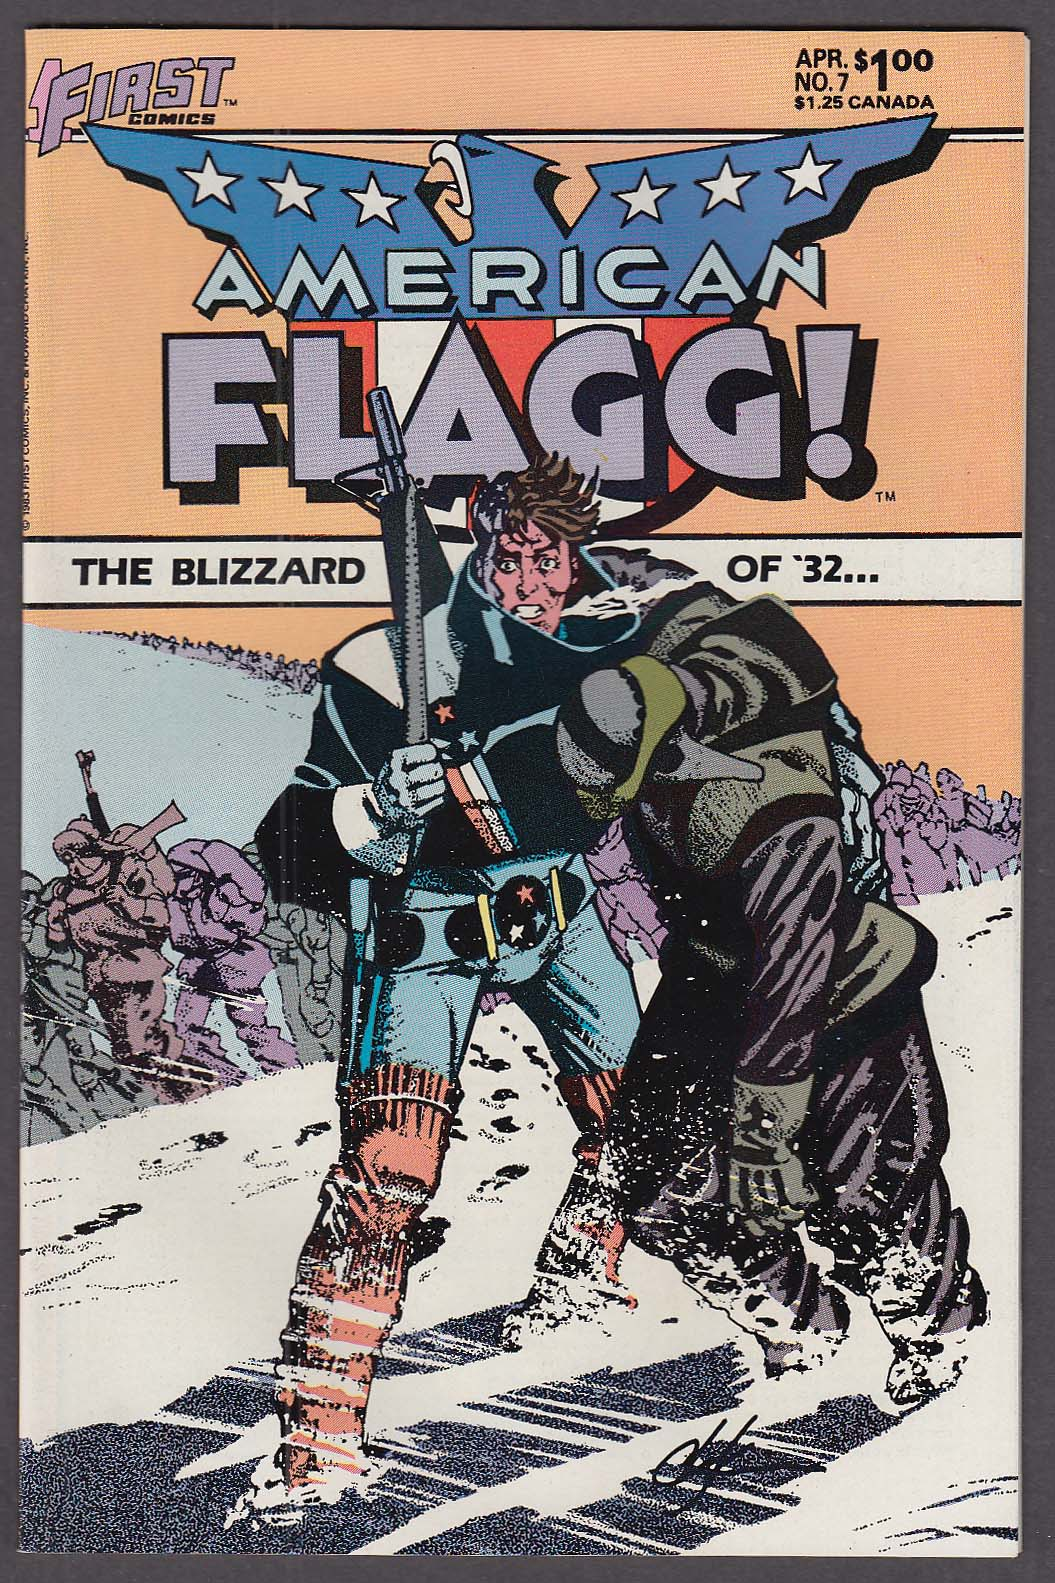 AMERICAN FLAGG! #7 First comic book 4 1984